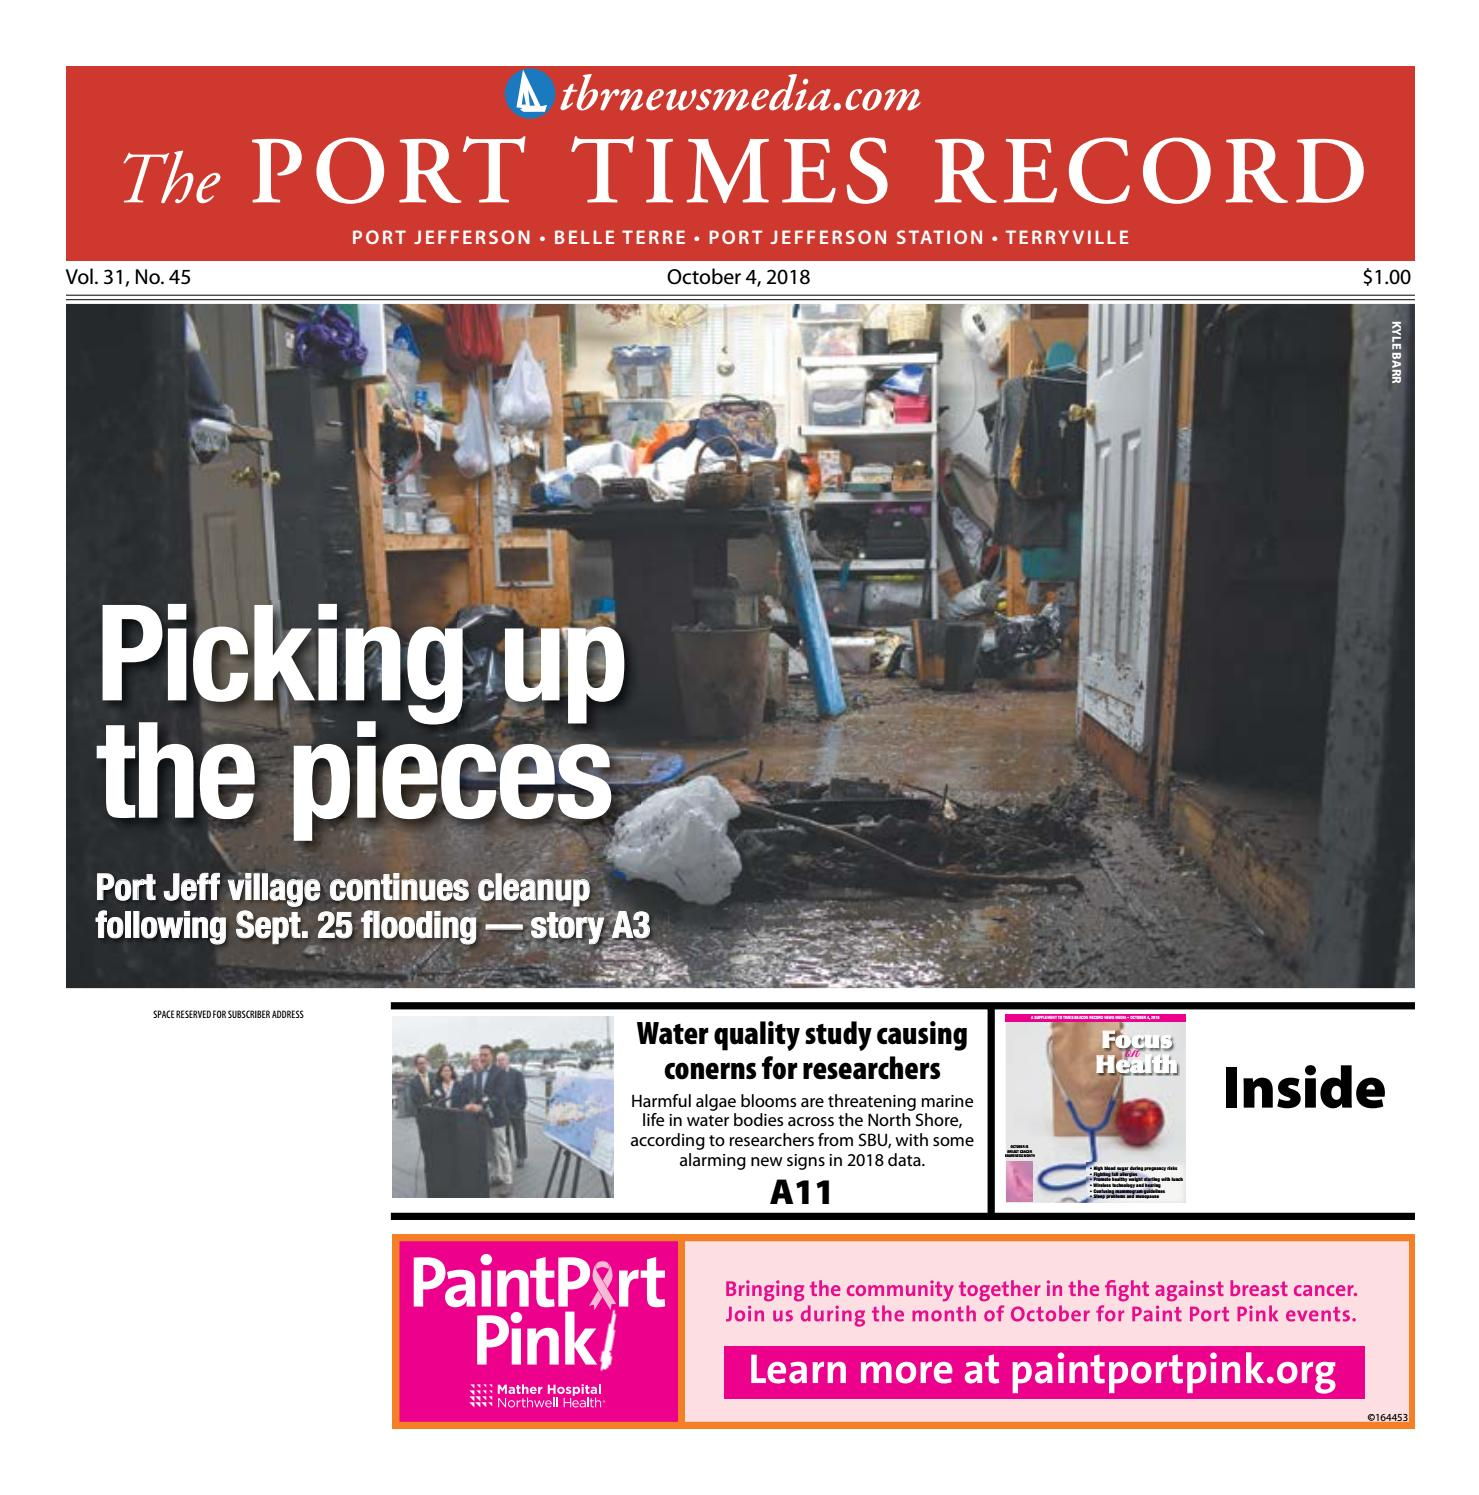 The Port Times Record - October 4, 2018 by TBR News Media